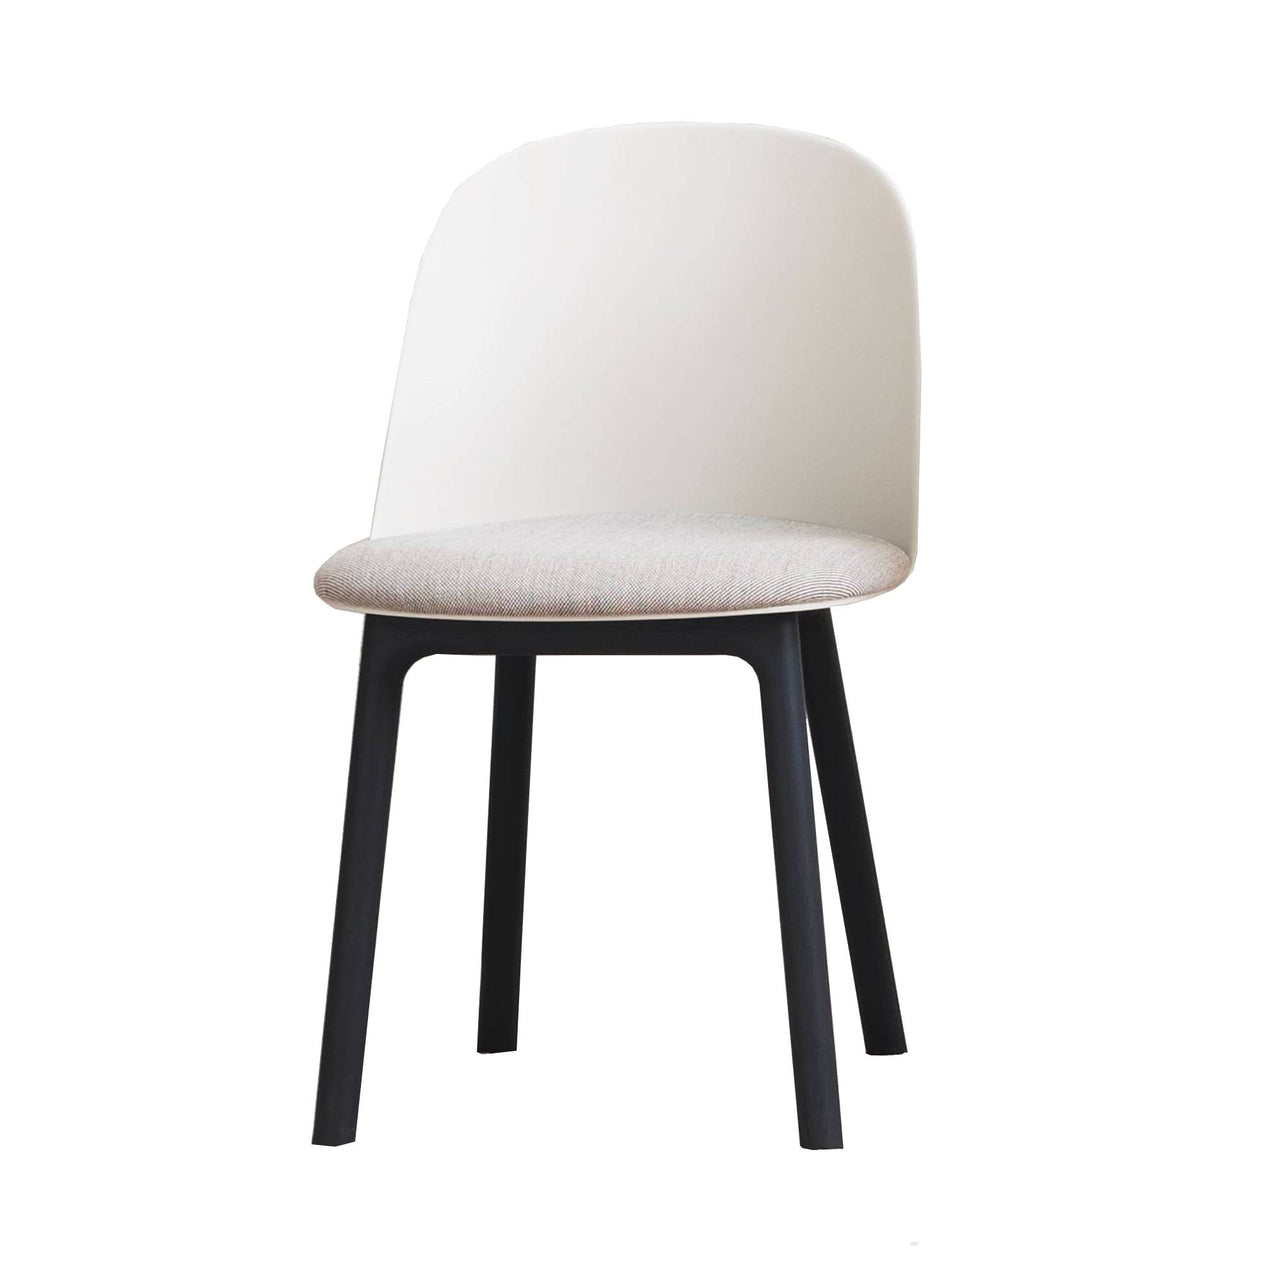 Mariolina Side Chair: Wood Base + Upholstery + Silk Grey Shell